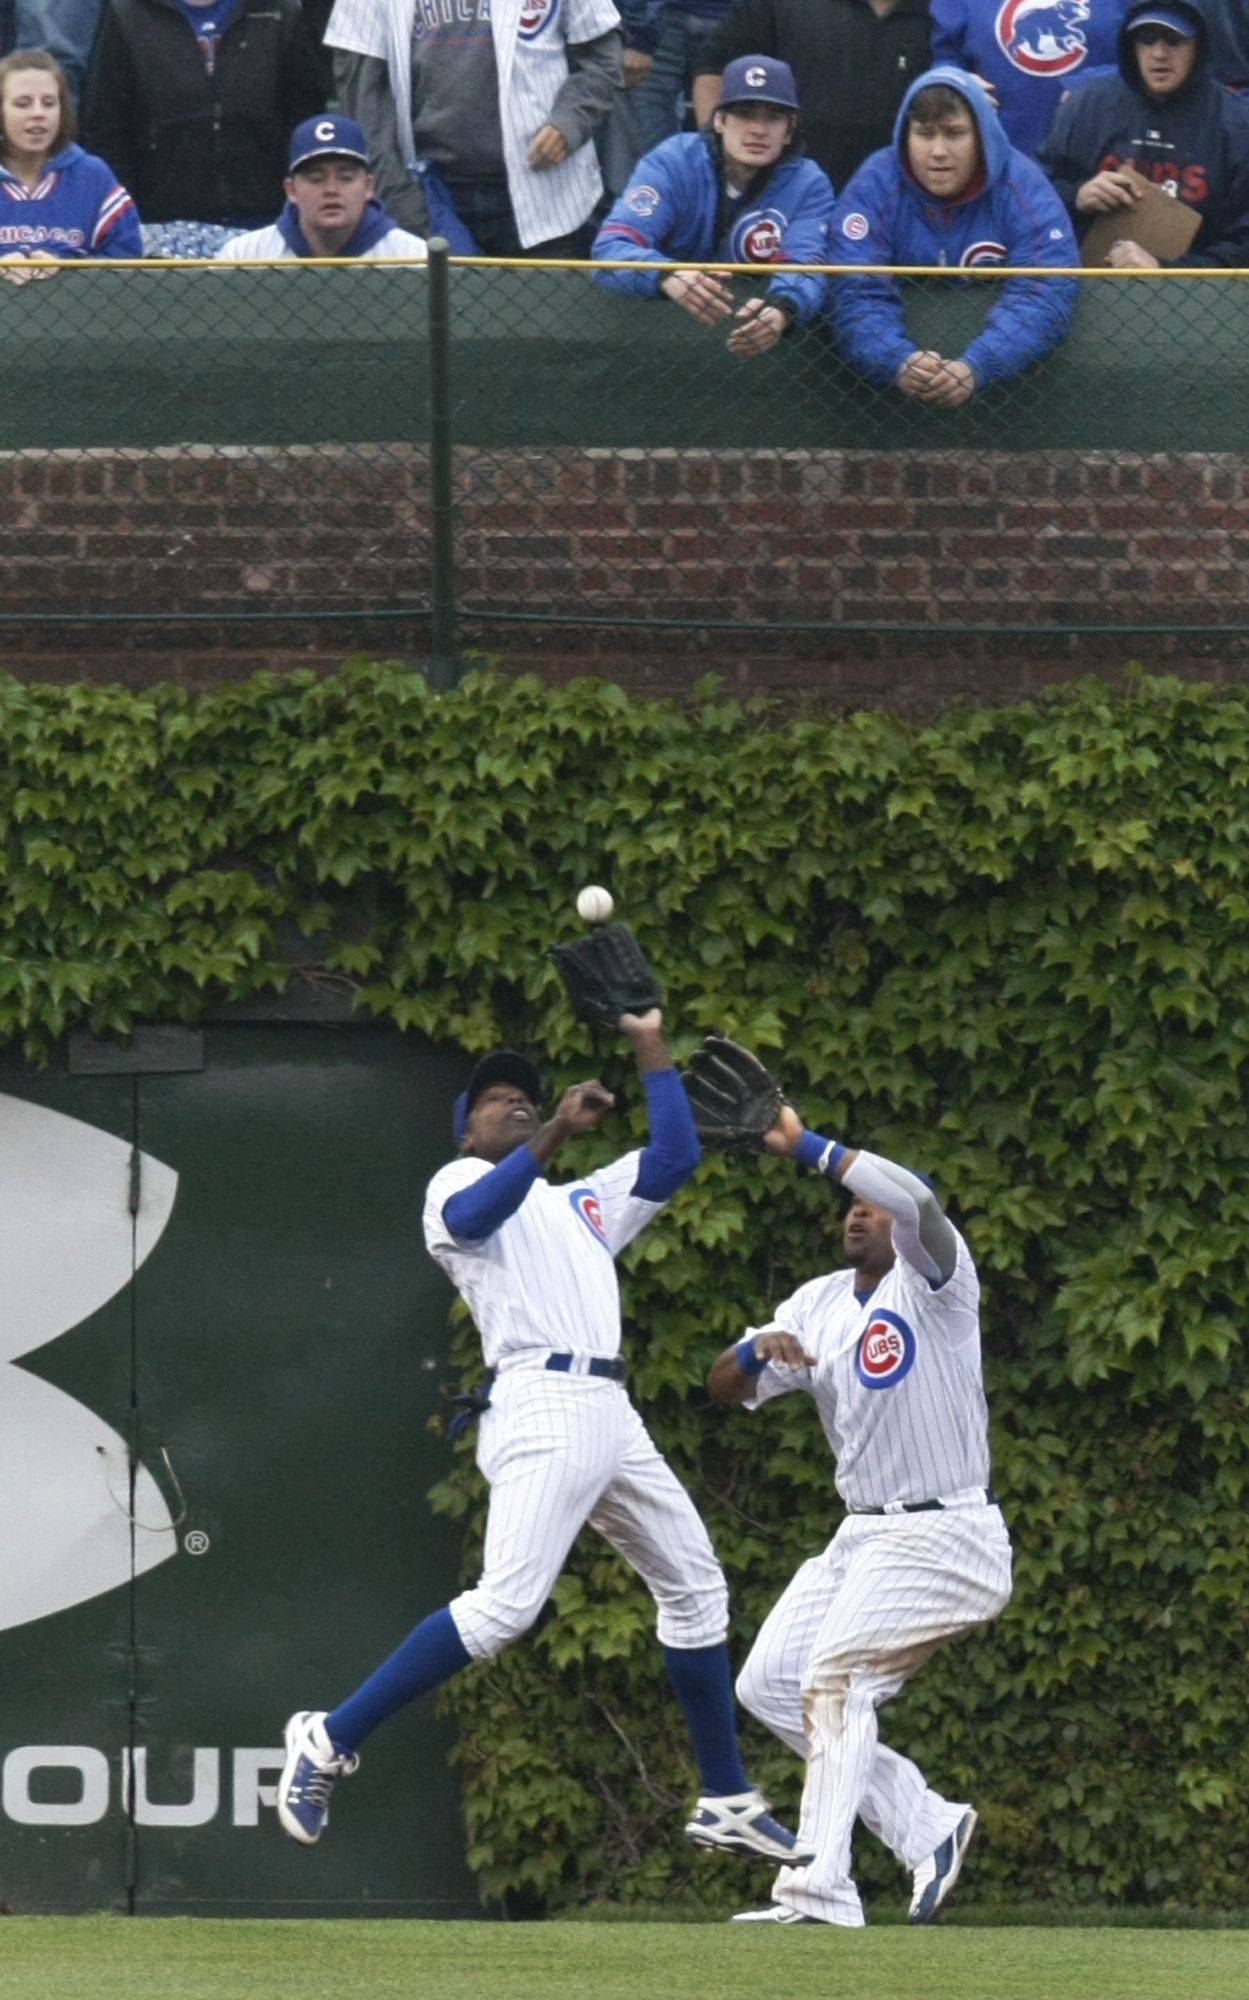 Left fielder Alfonso Soriano, left, leaps in front of center fielder Marlon Byrd to catch a long fly ball last May at Wrigley Field in Chicago.